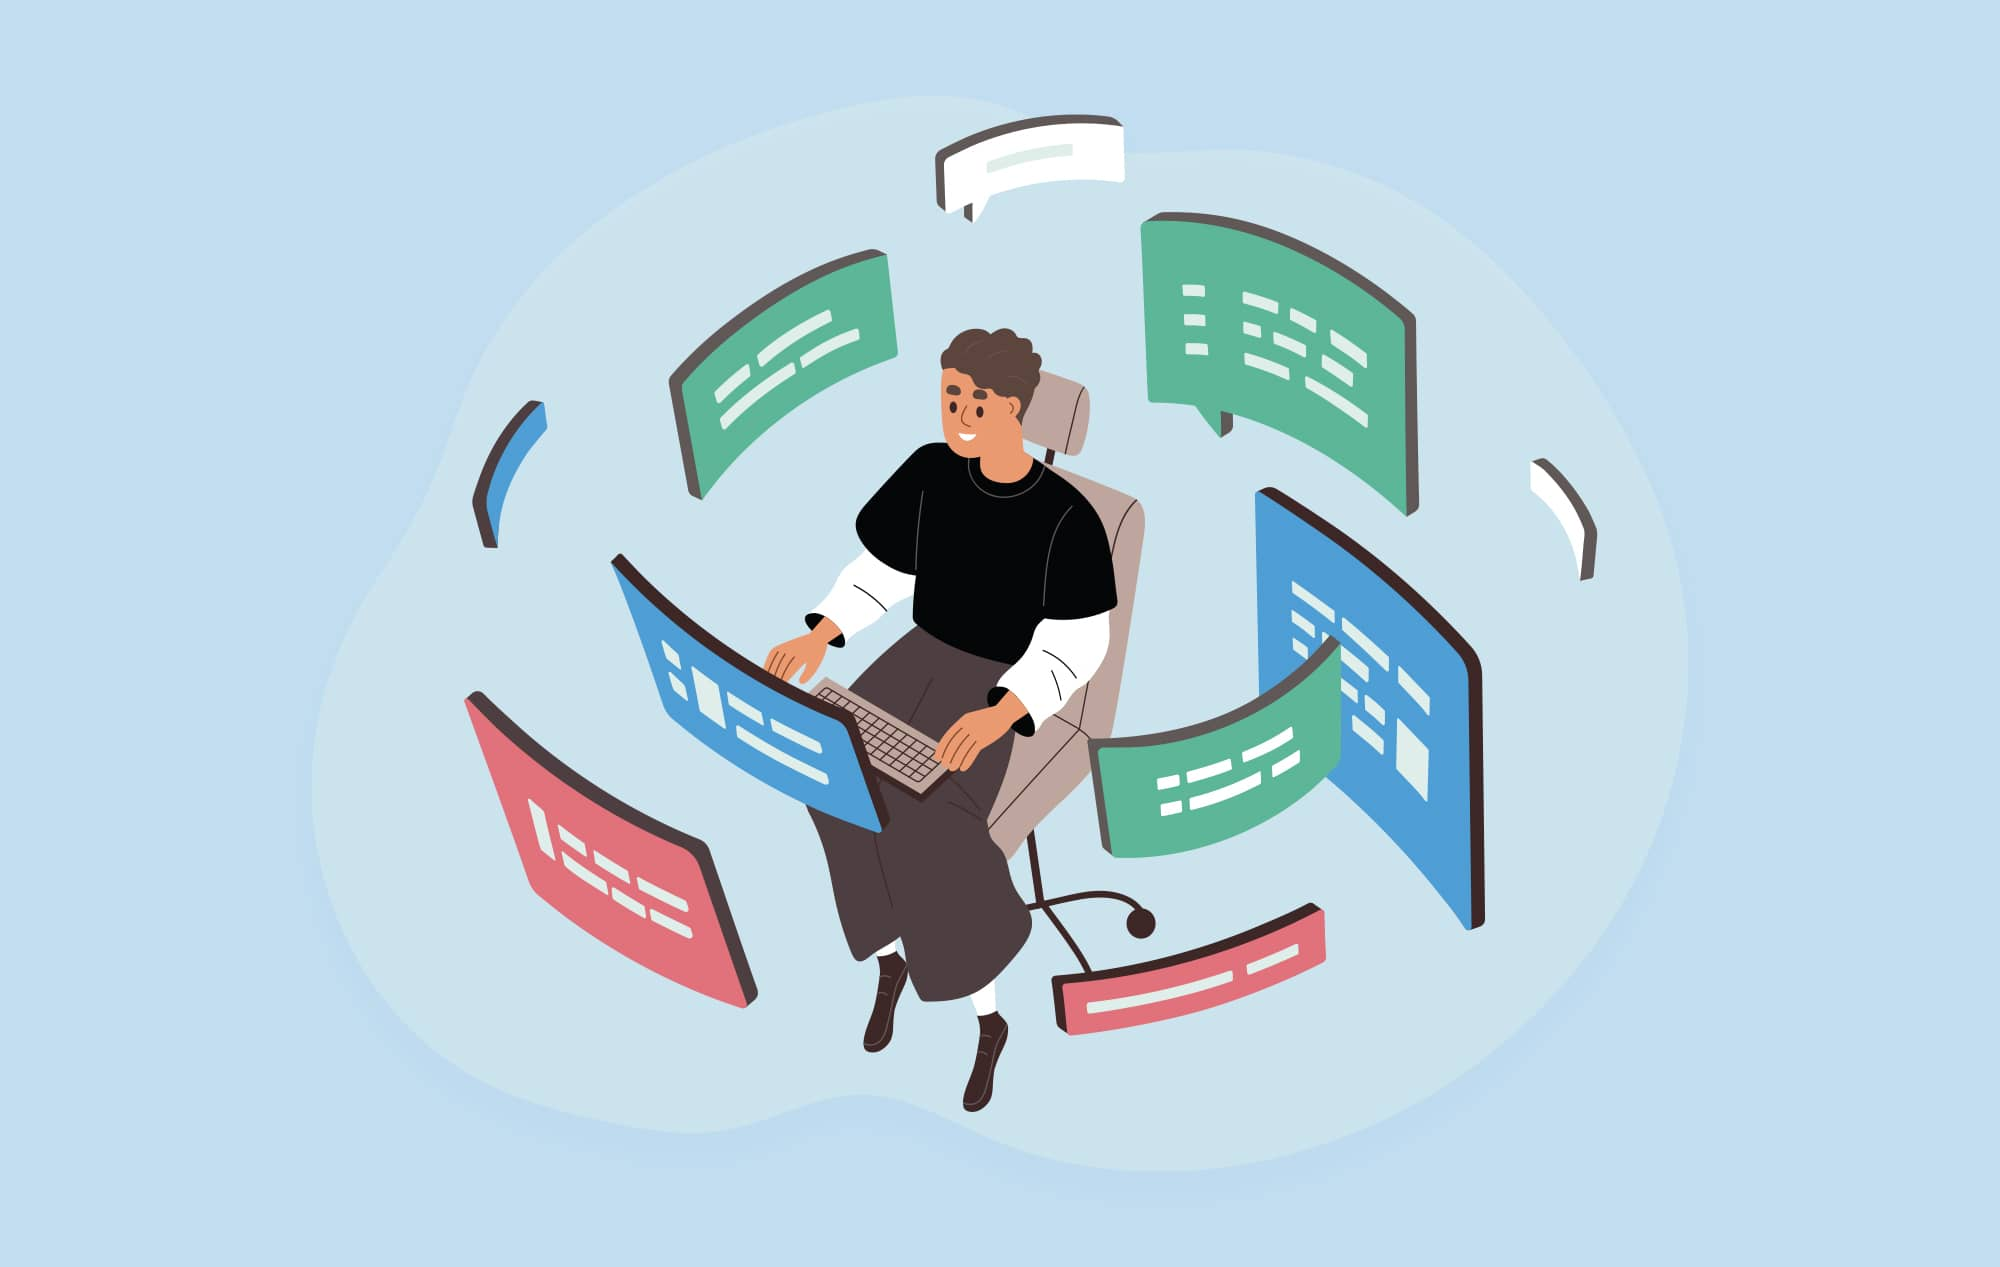 Illustration of a person sitting at a computer with floating modals surrounding them.